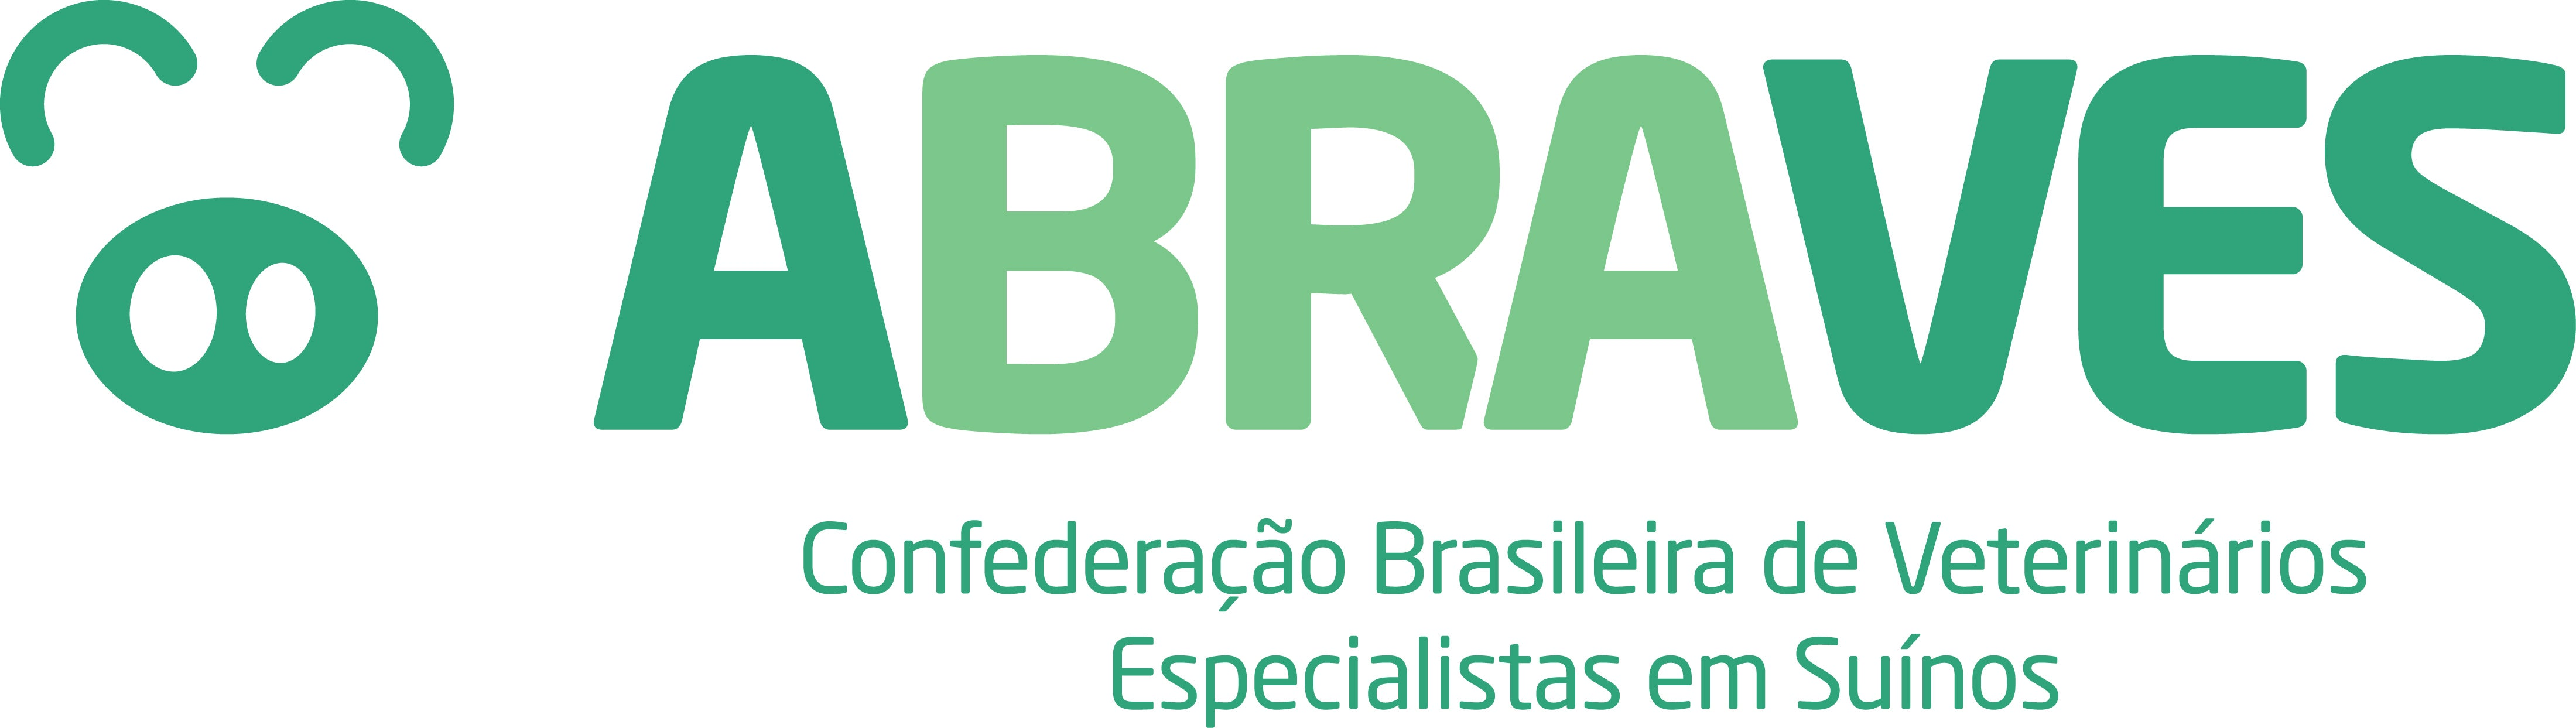 Brazilian Association of Swine Veterinary Specialists (ABRAVES) logo